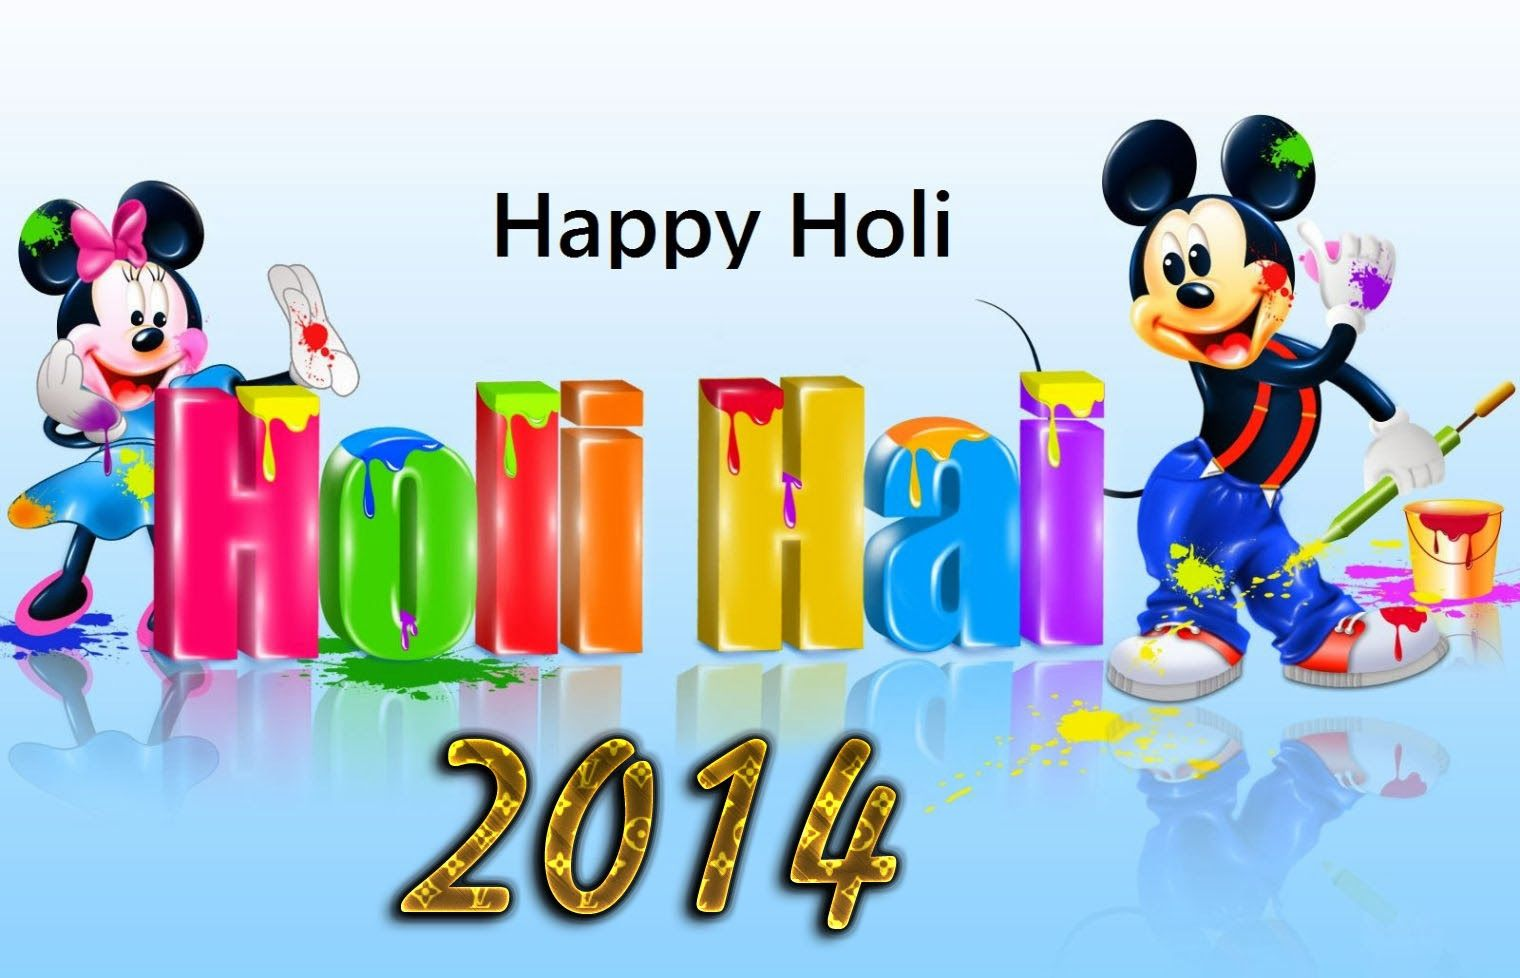 Download Holi Wallpaper For Mobile 2014 In Hd